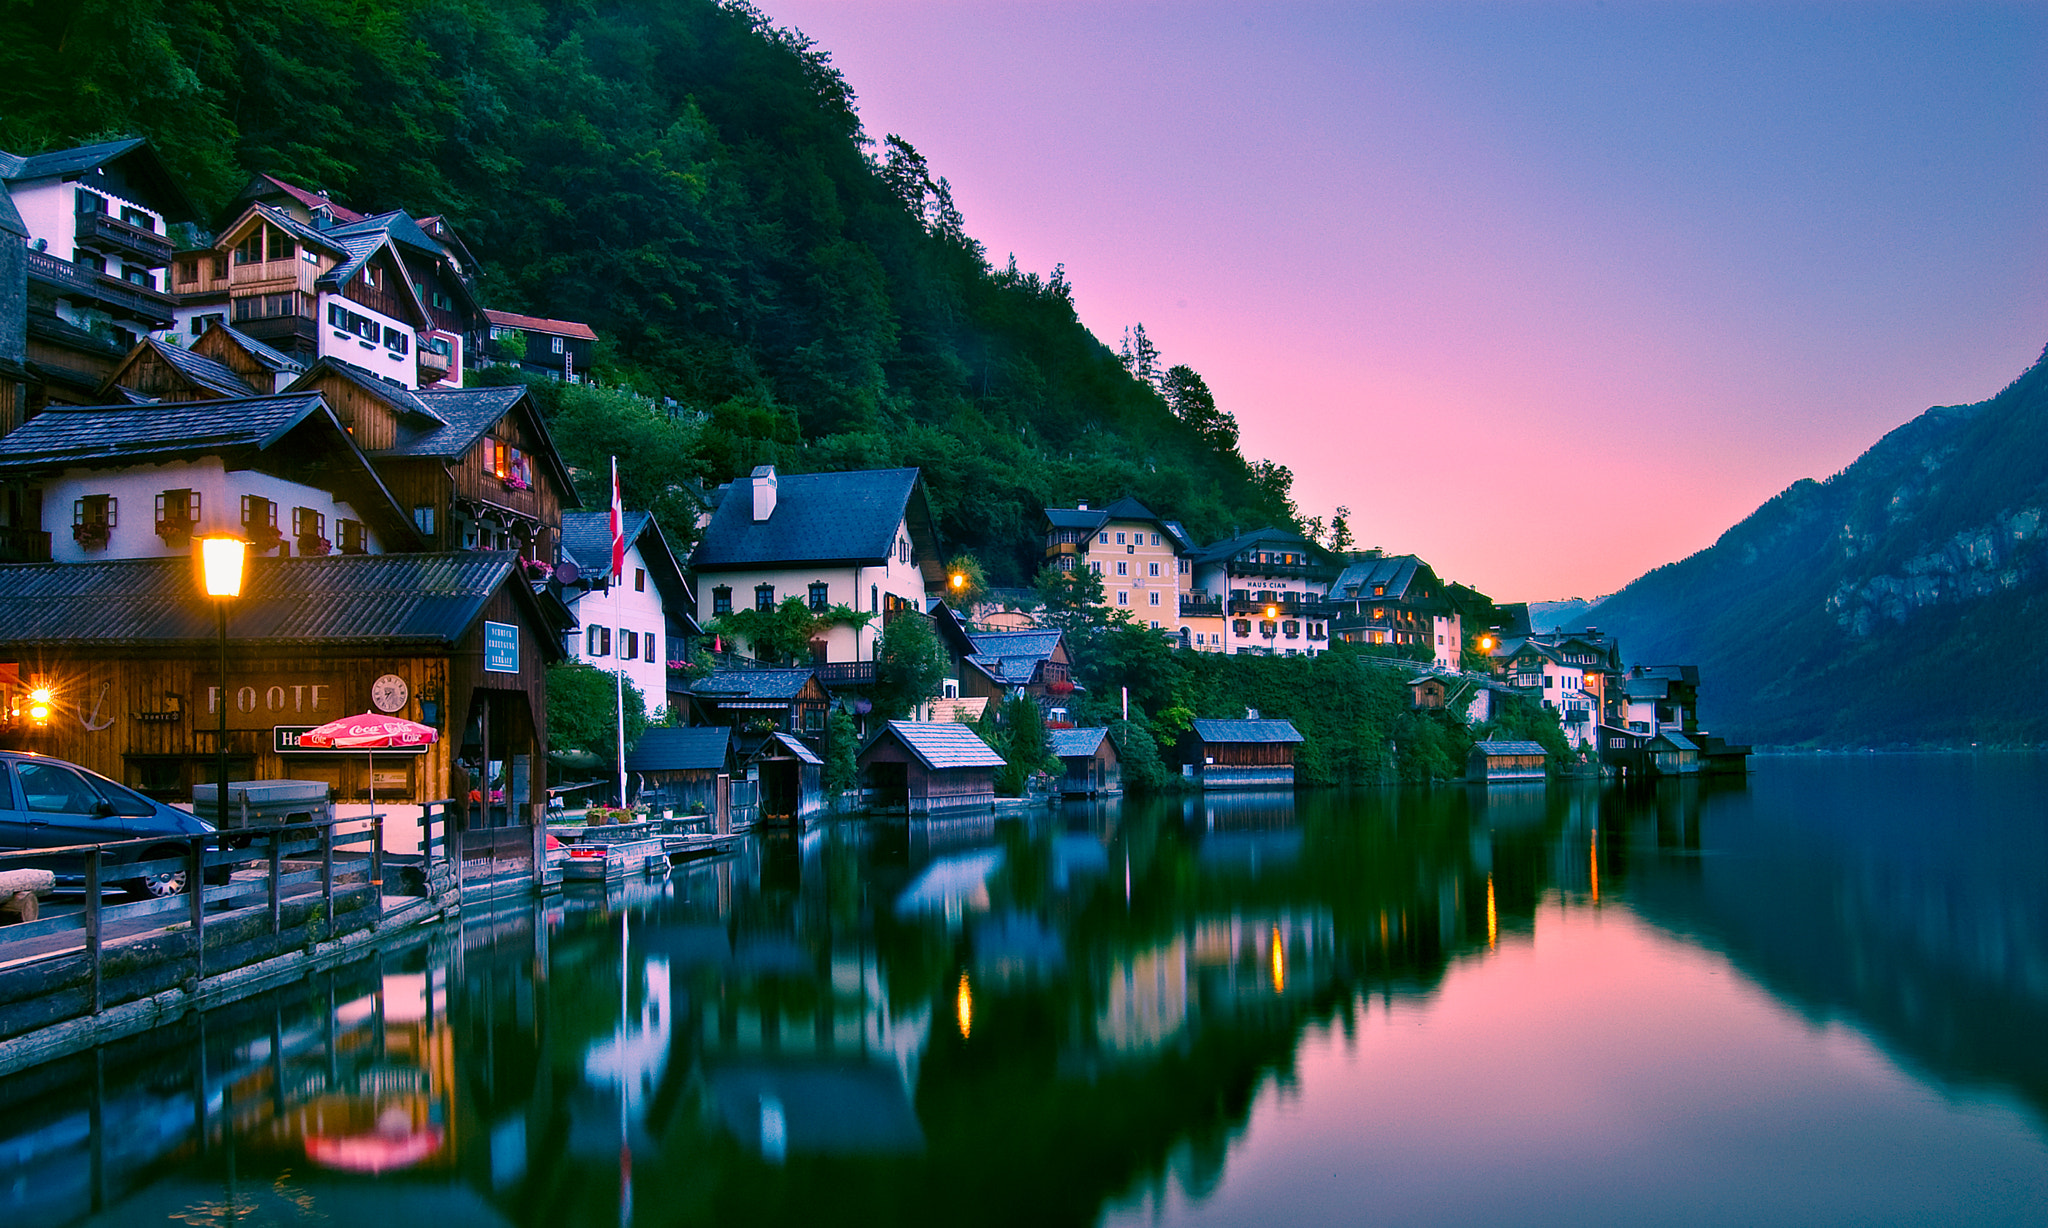 Photograph Early Morning in Hallstatt by Natasha Pnini on 500px